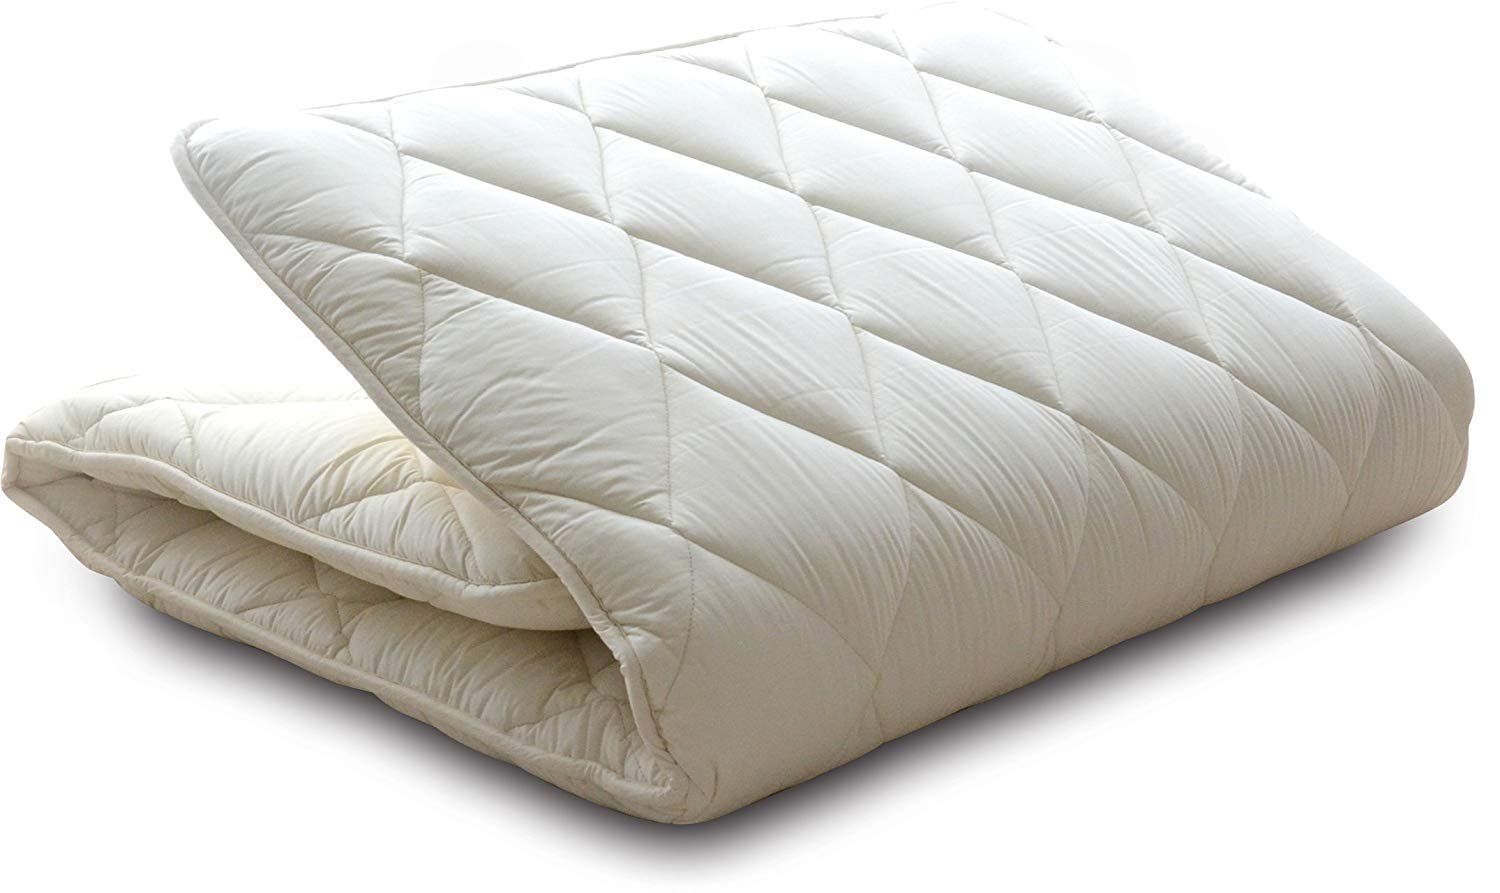 EMOOR Japanese Traditional Futon Mattress Classe (55 x 83 x 2.5 in.), Full-Long Size, Made in Japan by EMOOR